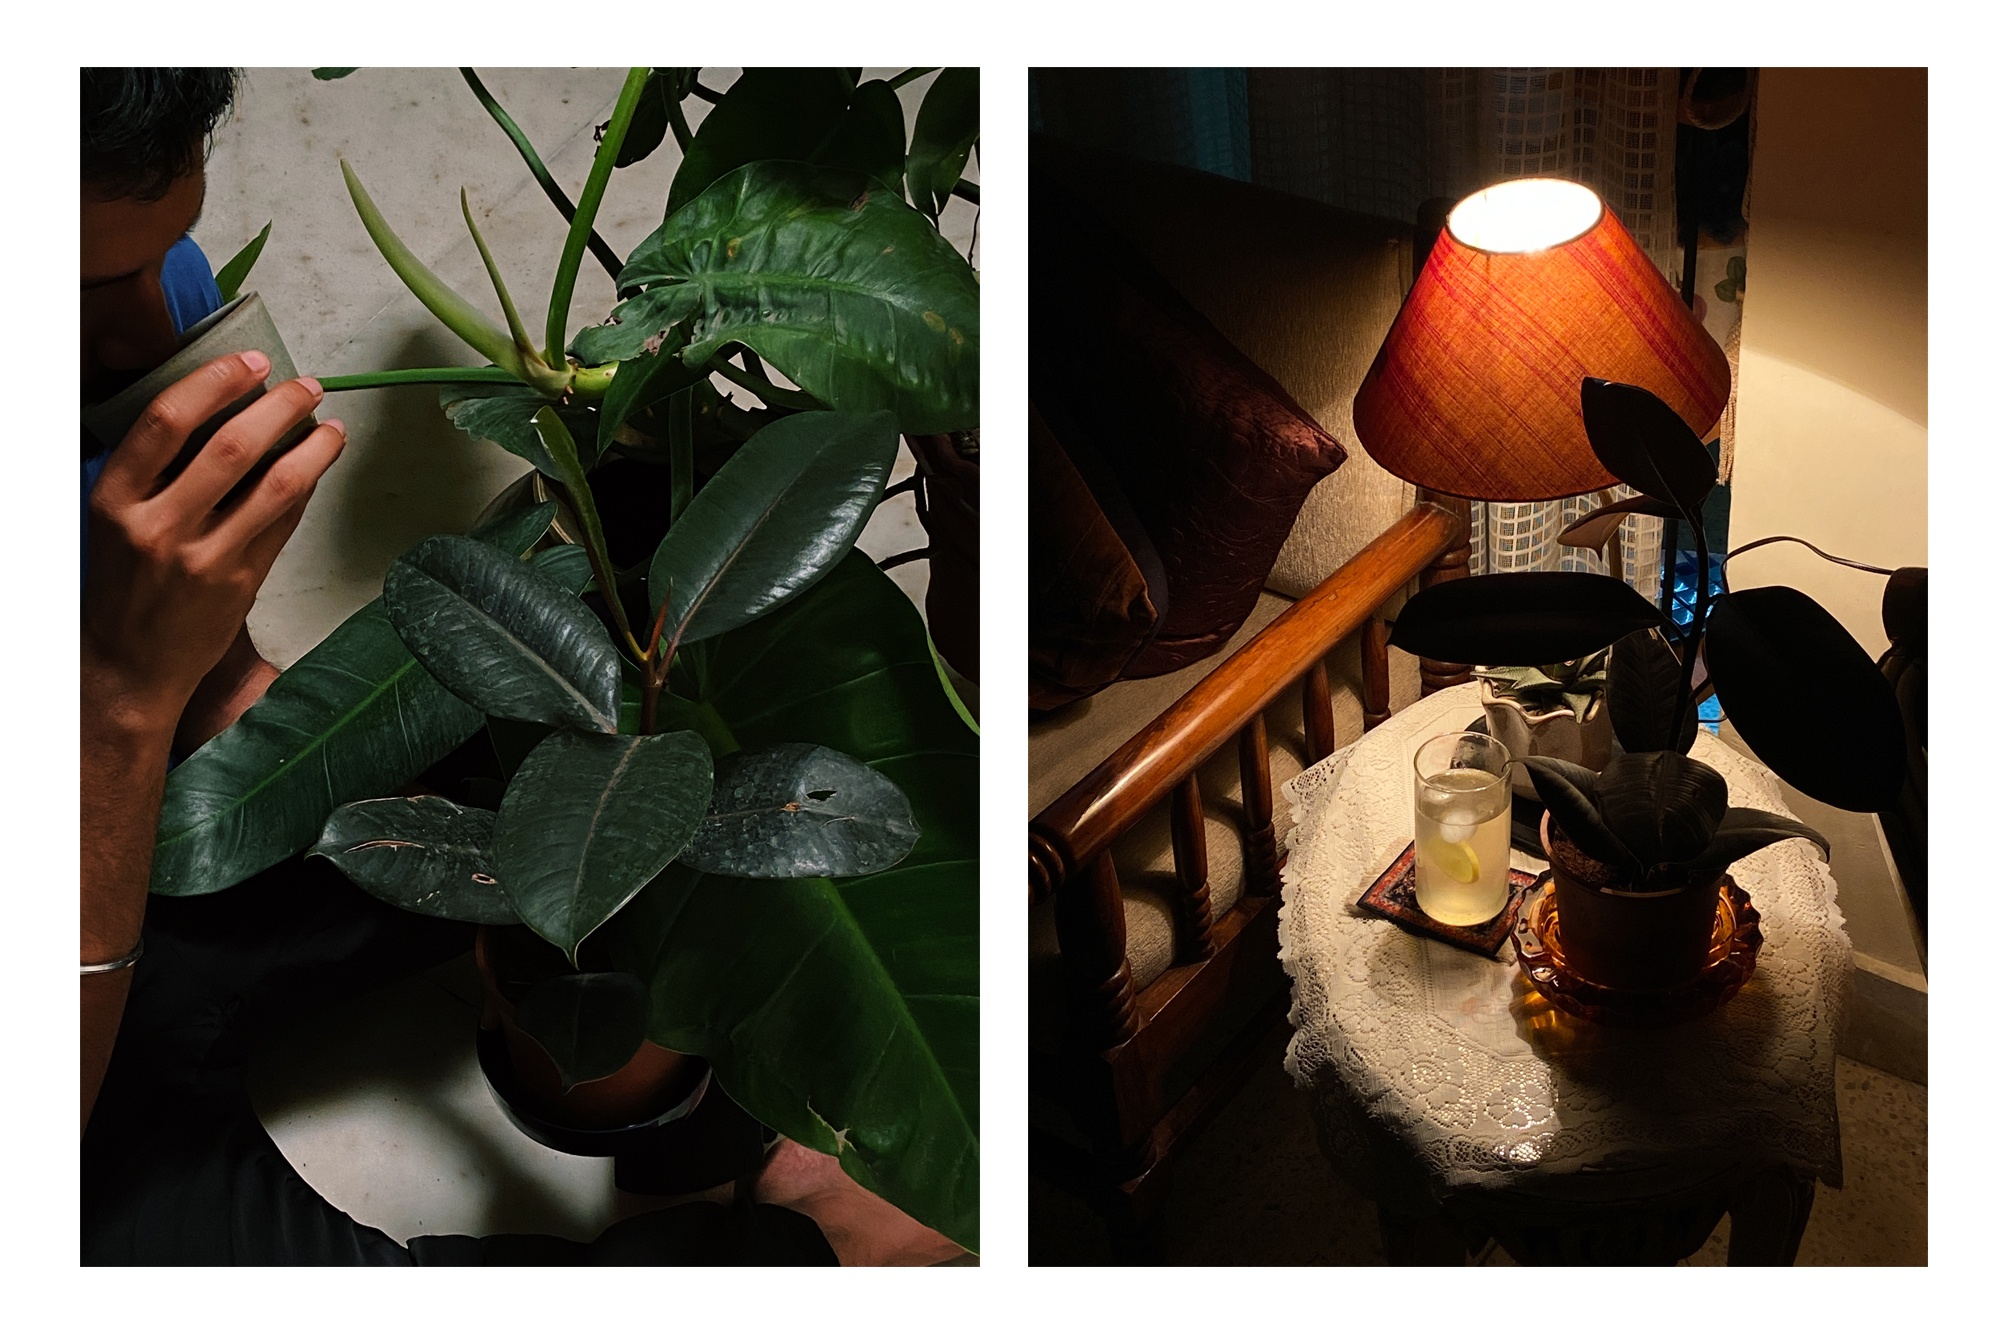 I_Brought_Home_A_New_Plant_Taarini_Sixth